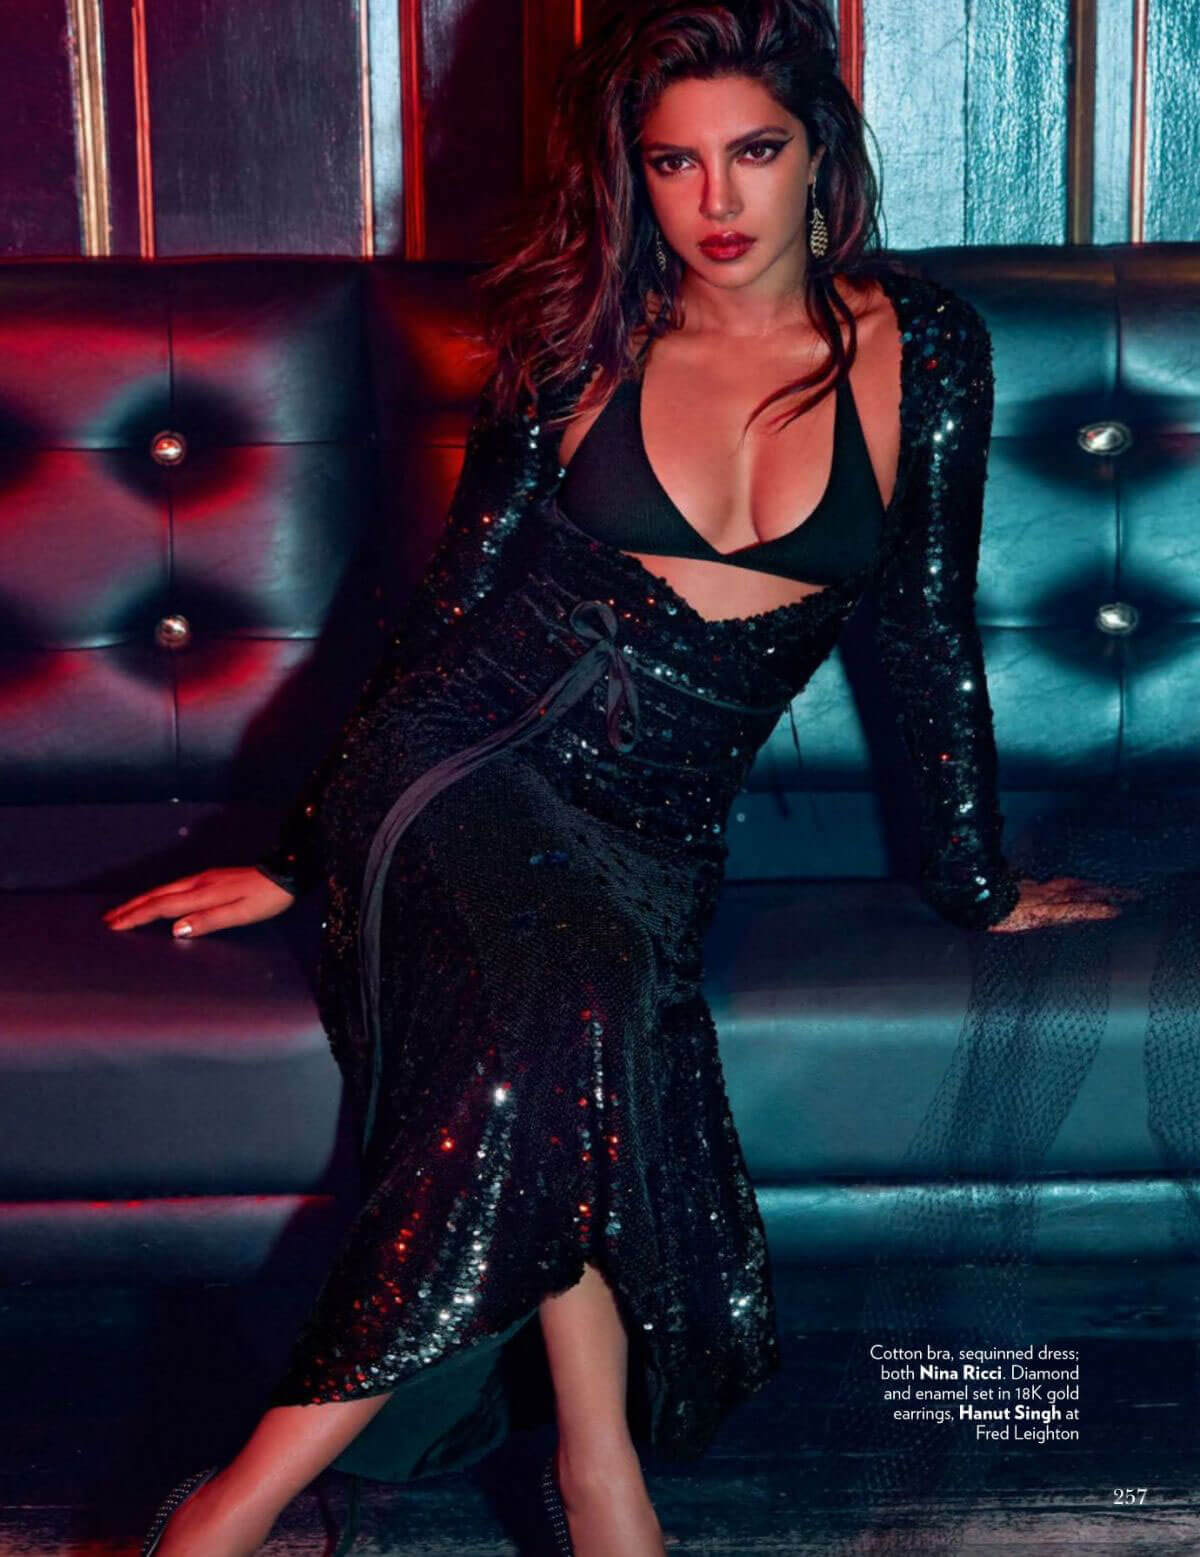 Priyanka Chopra Poses for Vogue Magazine India Photoshoot ...